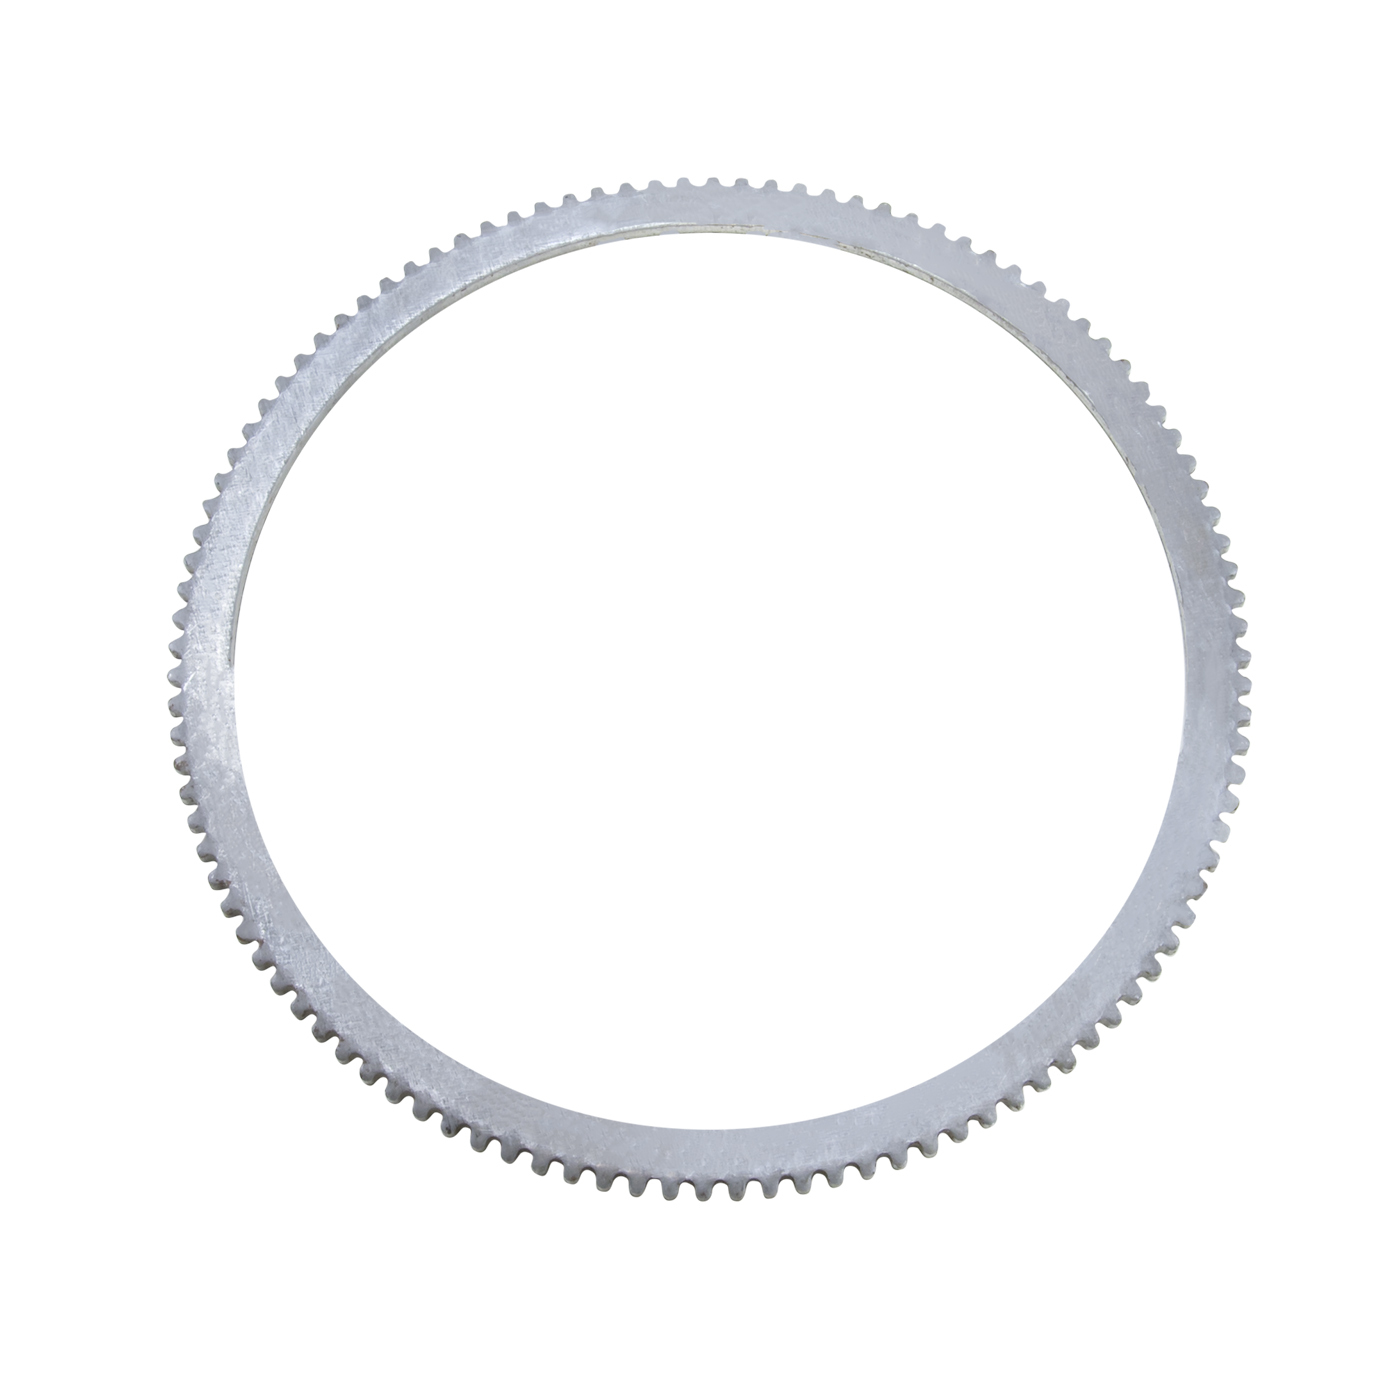 YSPABS-005 - 108 tooth ABS tone ring for 9.25